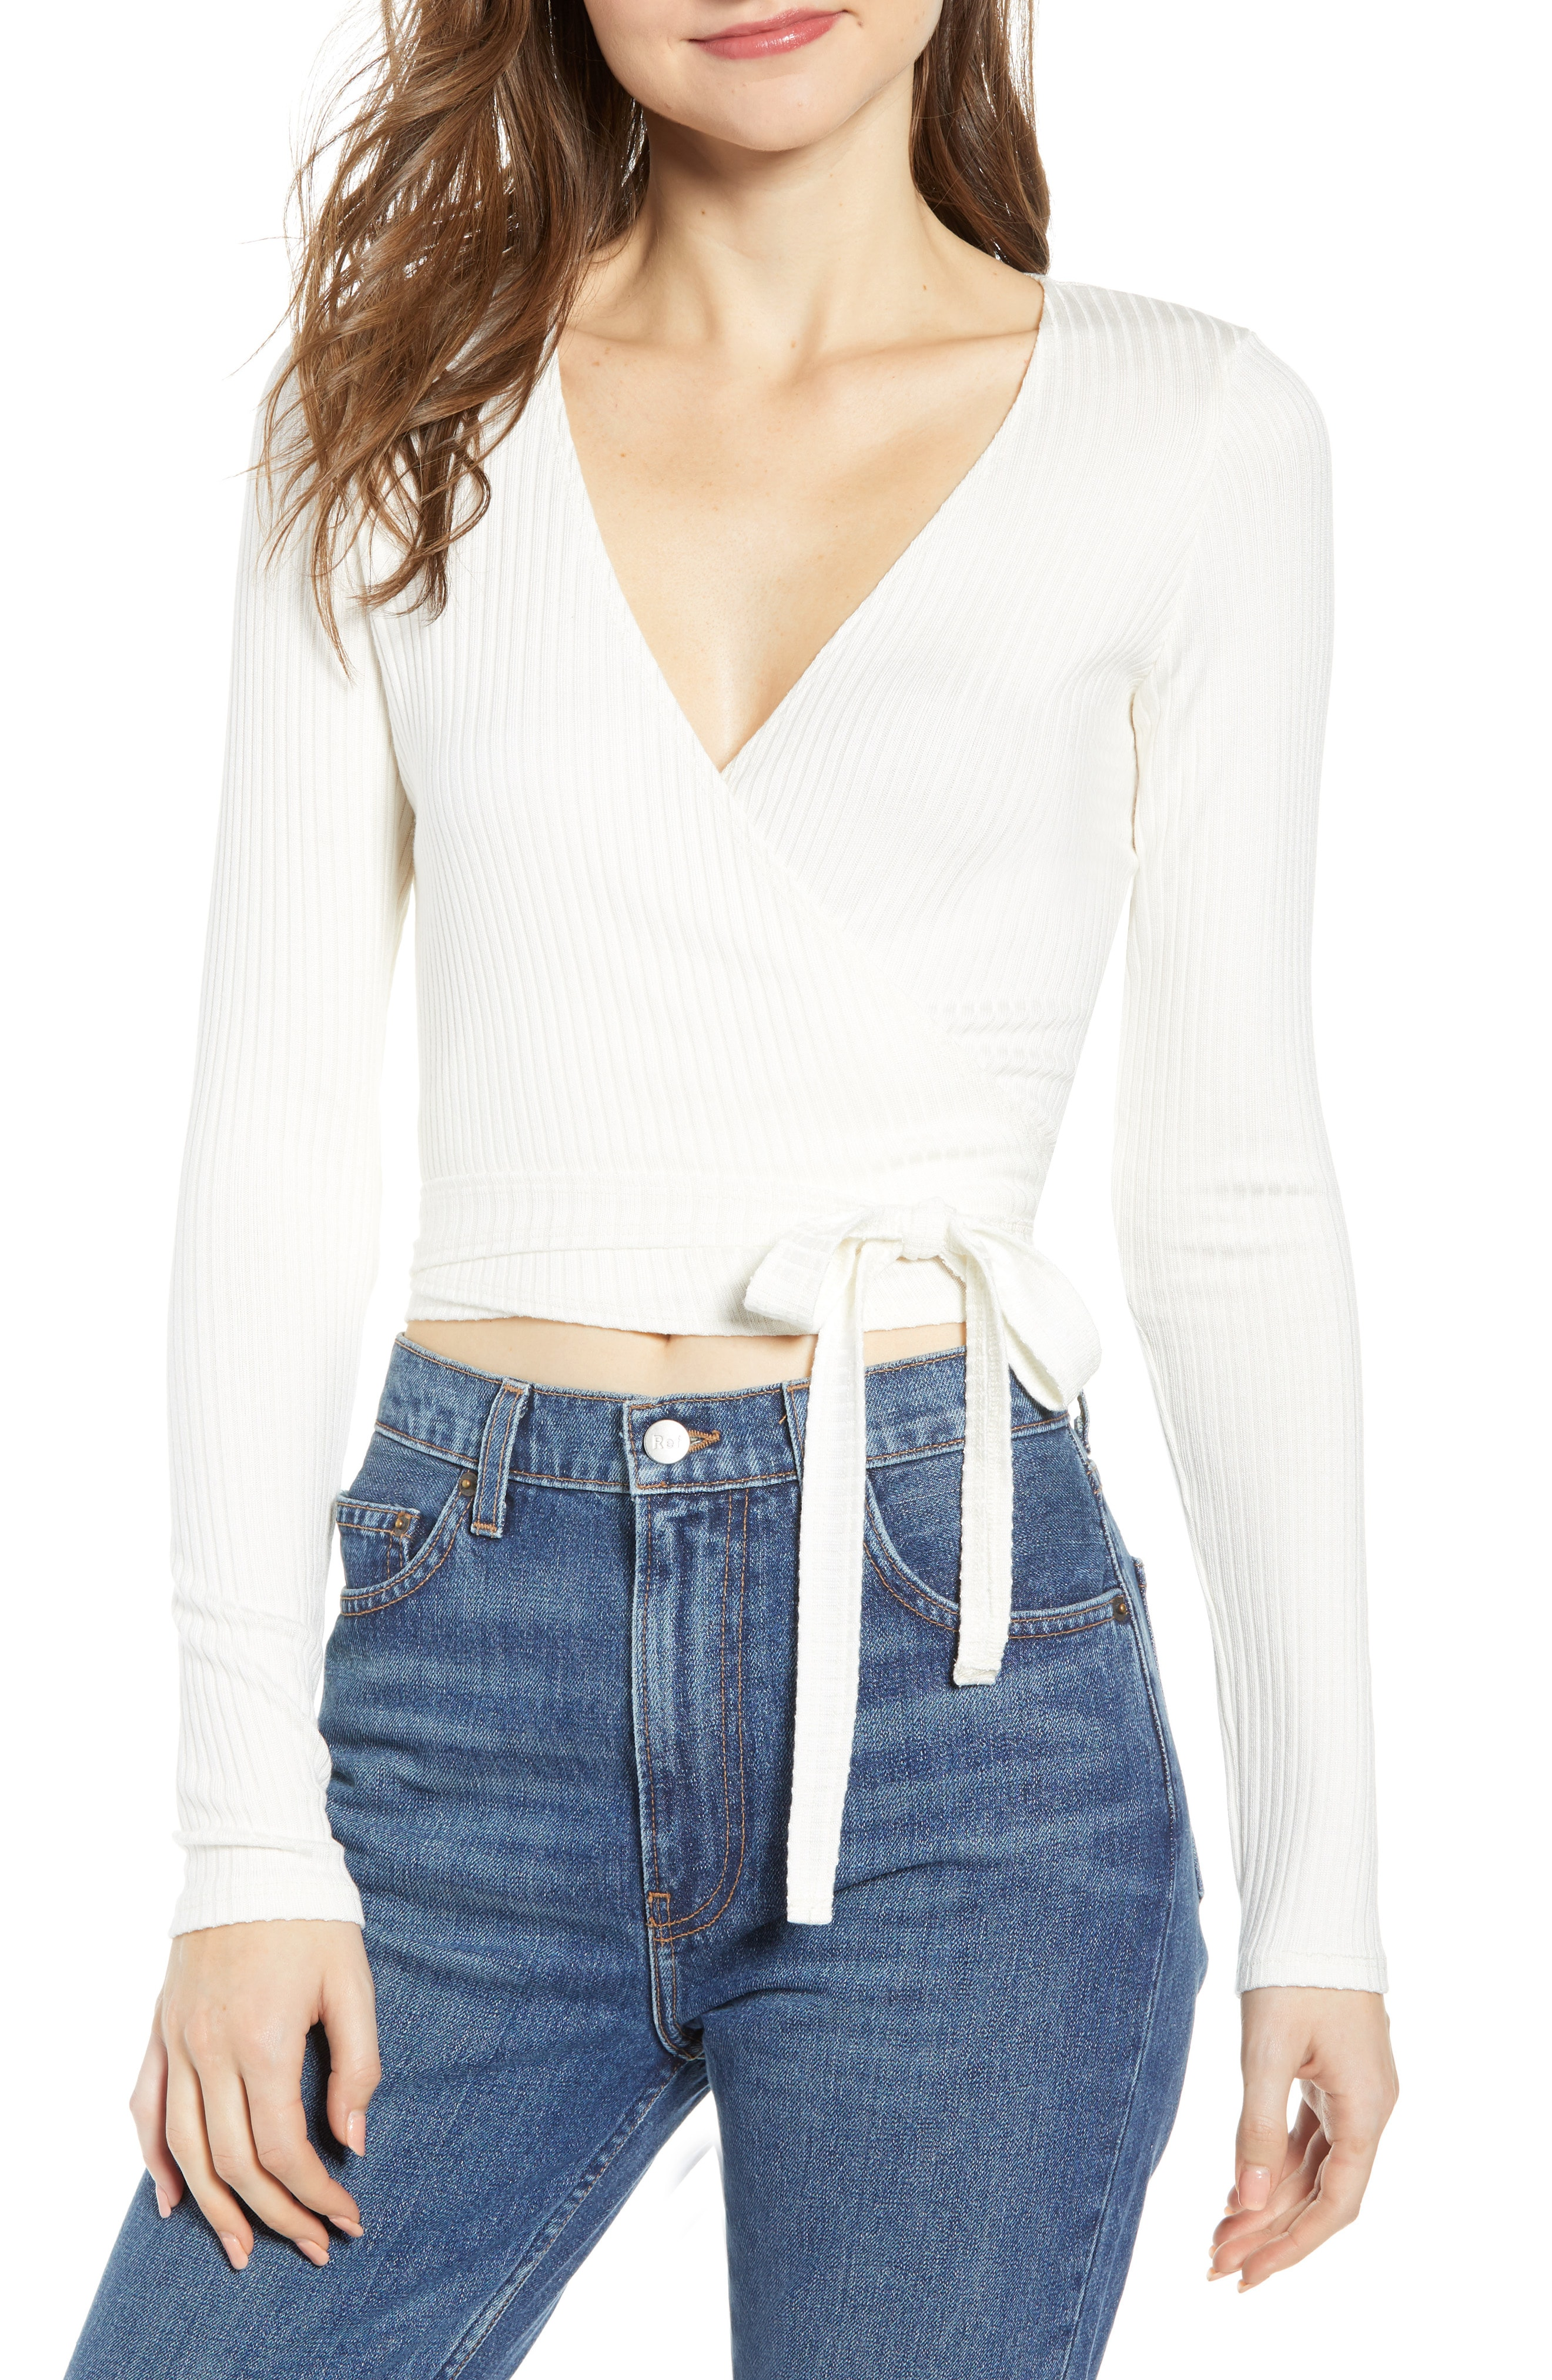 Women's Crop Tops Tops | Nordstrom